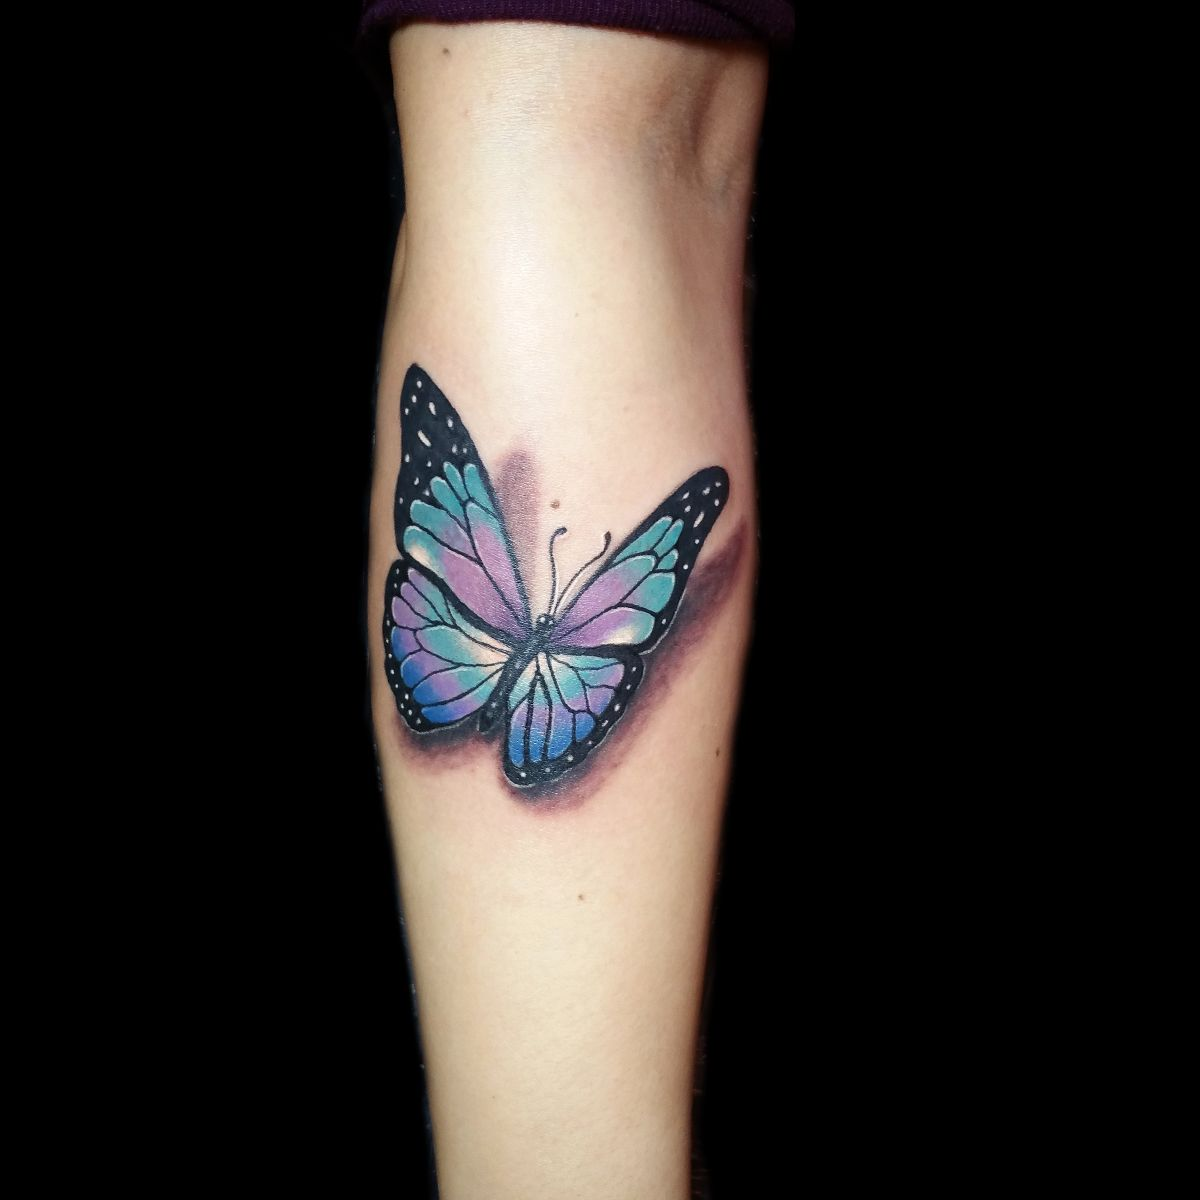 Pin By Masterpiece Tattoo On 3d Tattoos By Masterpiece Tattoo